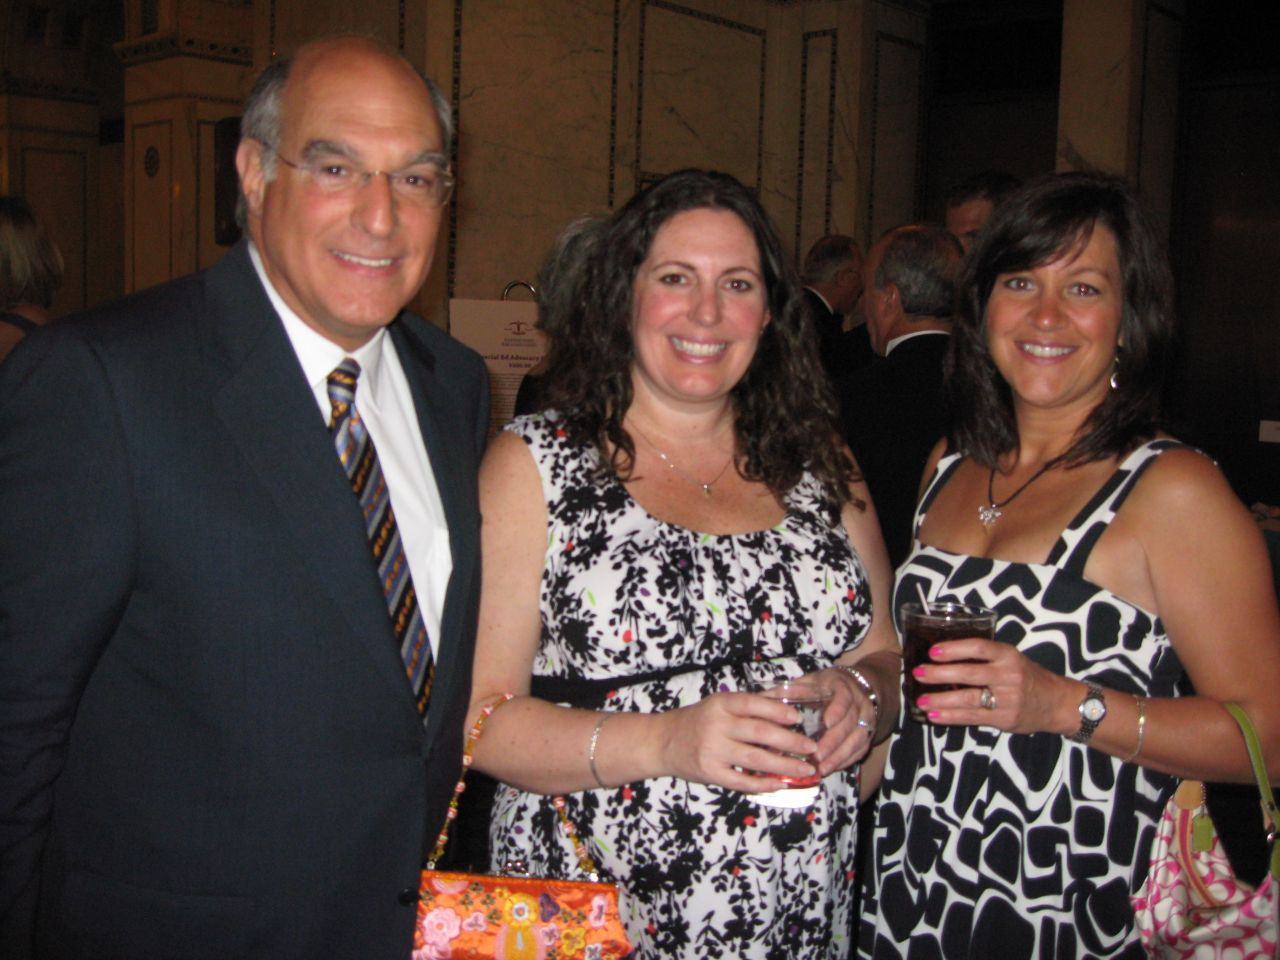 ISBA Second Vice President Mark Hassakis, IBF Executive Director Susan Lewers and IBF Associate Executive Director Lisa Corrao